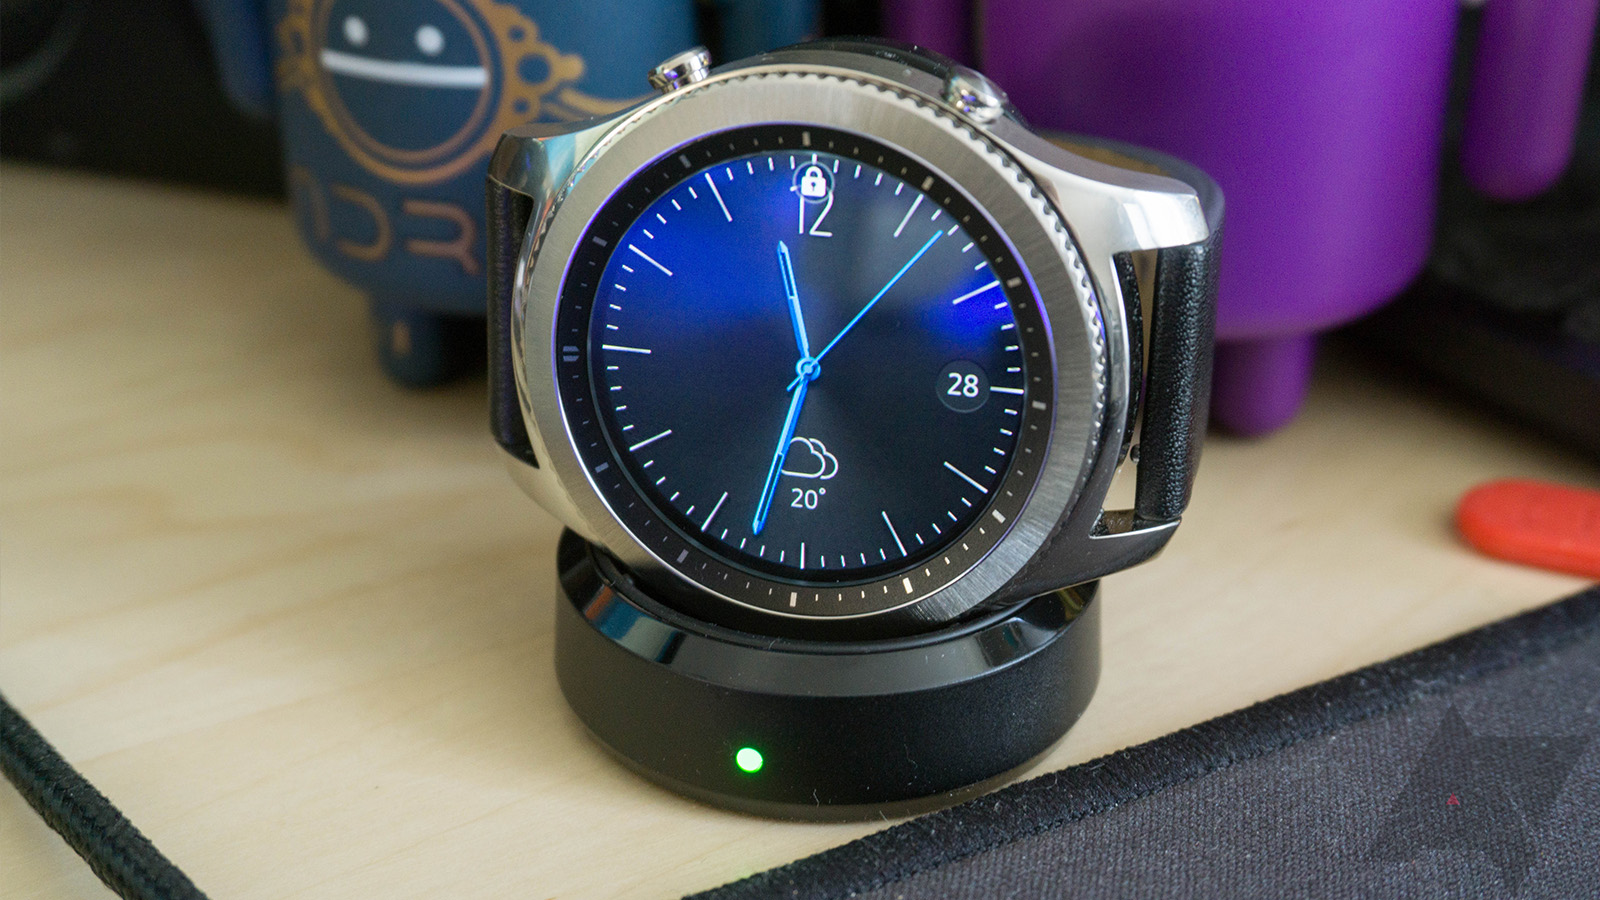 Samsung Gear S3 gets big update